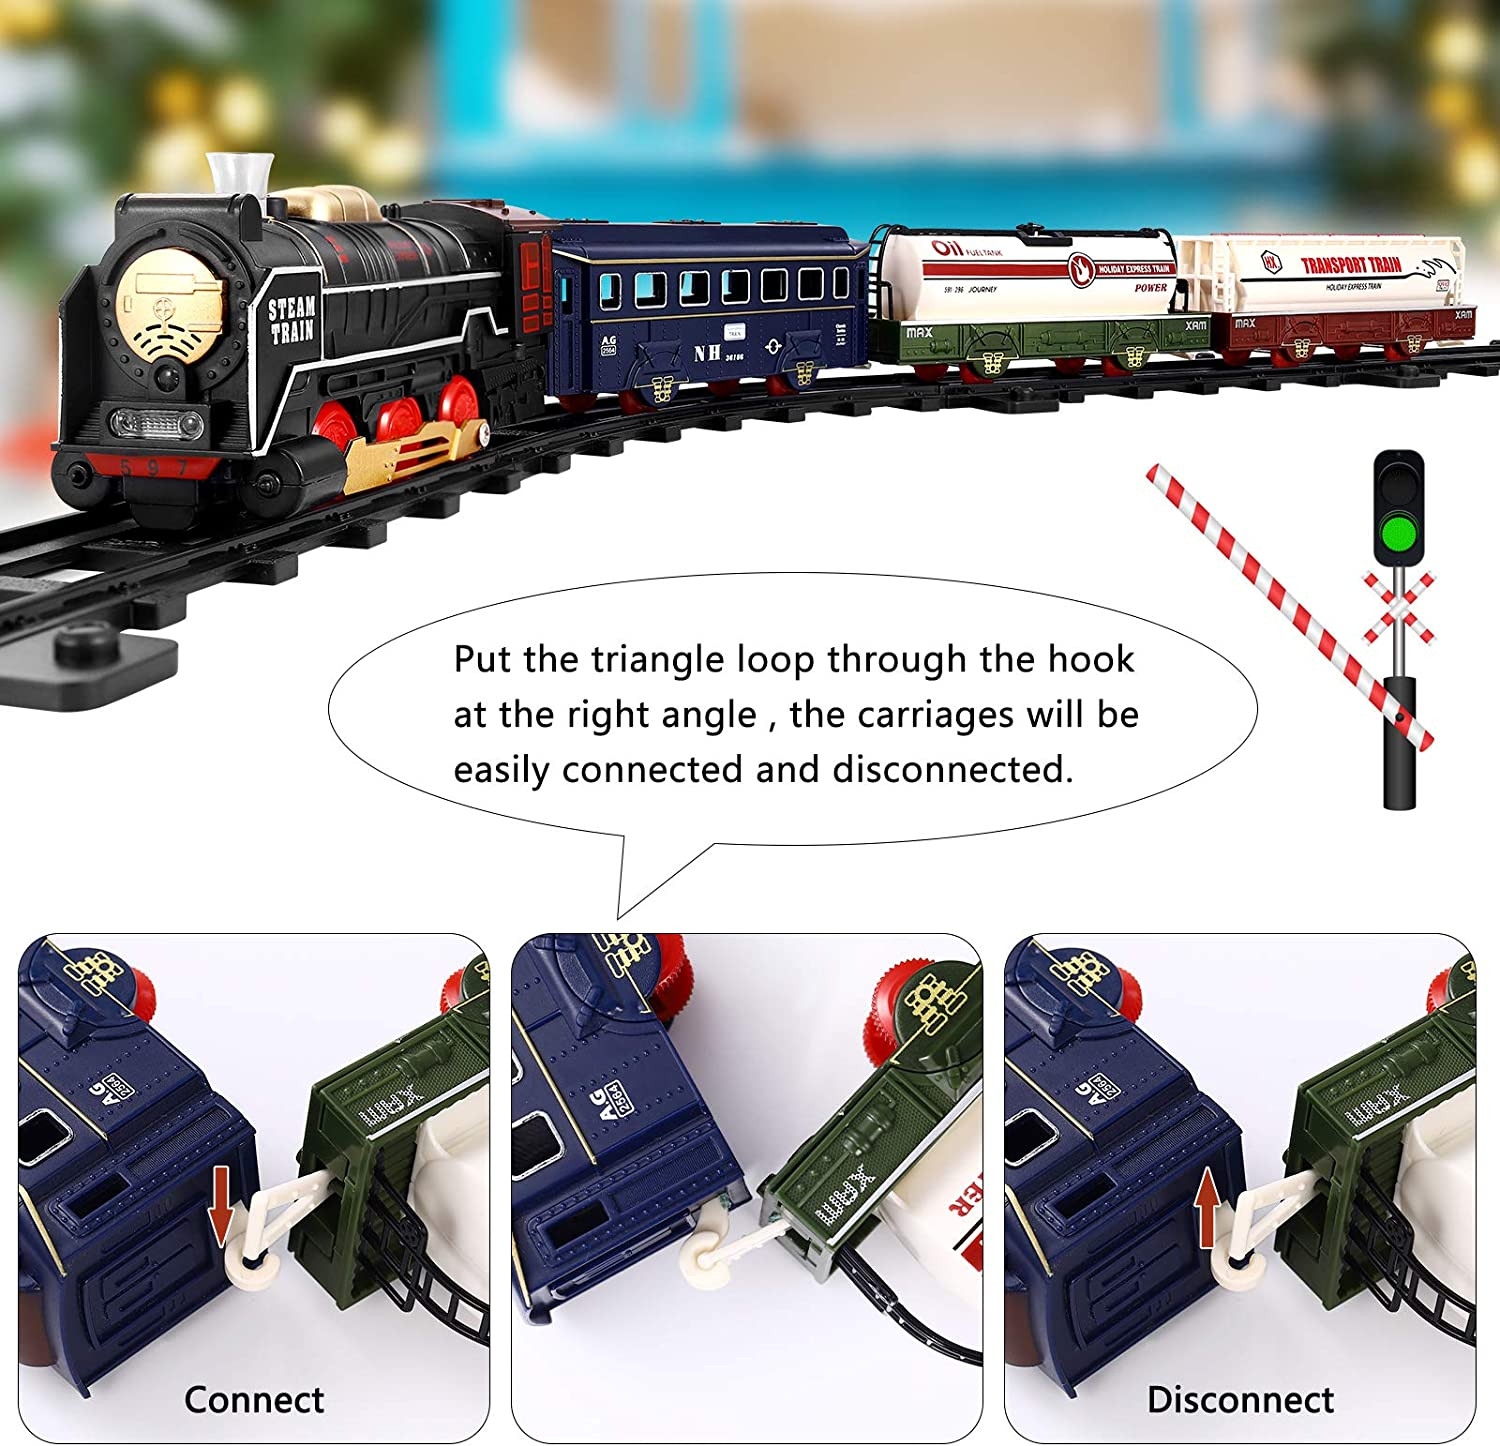 iBaseToy Steam Train Set for Kids Electric Battery Operated Toys Train for Christmas Tree with Lights and Music Classic Toy Train Set Gifts for 3 4 5 Years Old Include 4 Cars and 17 Tracks